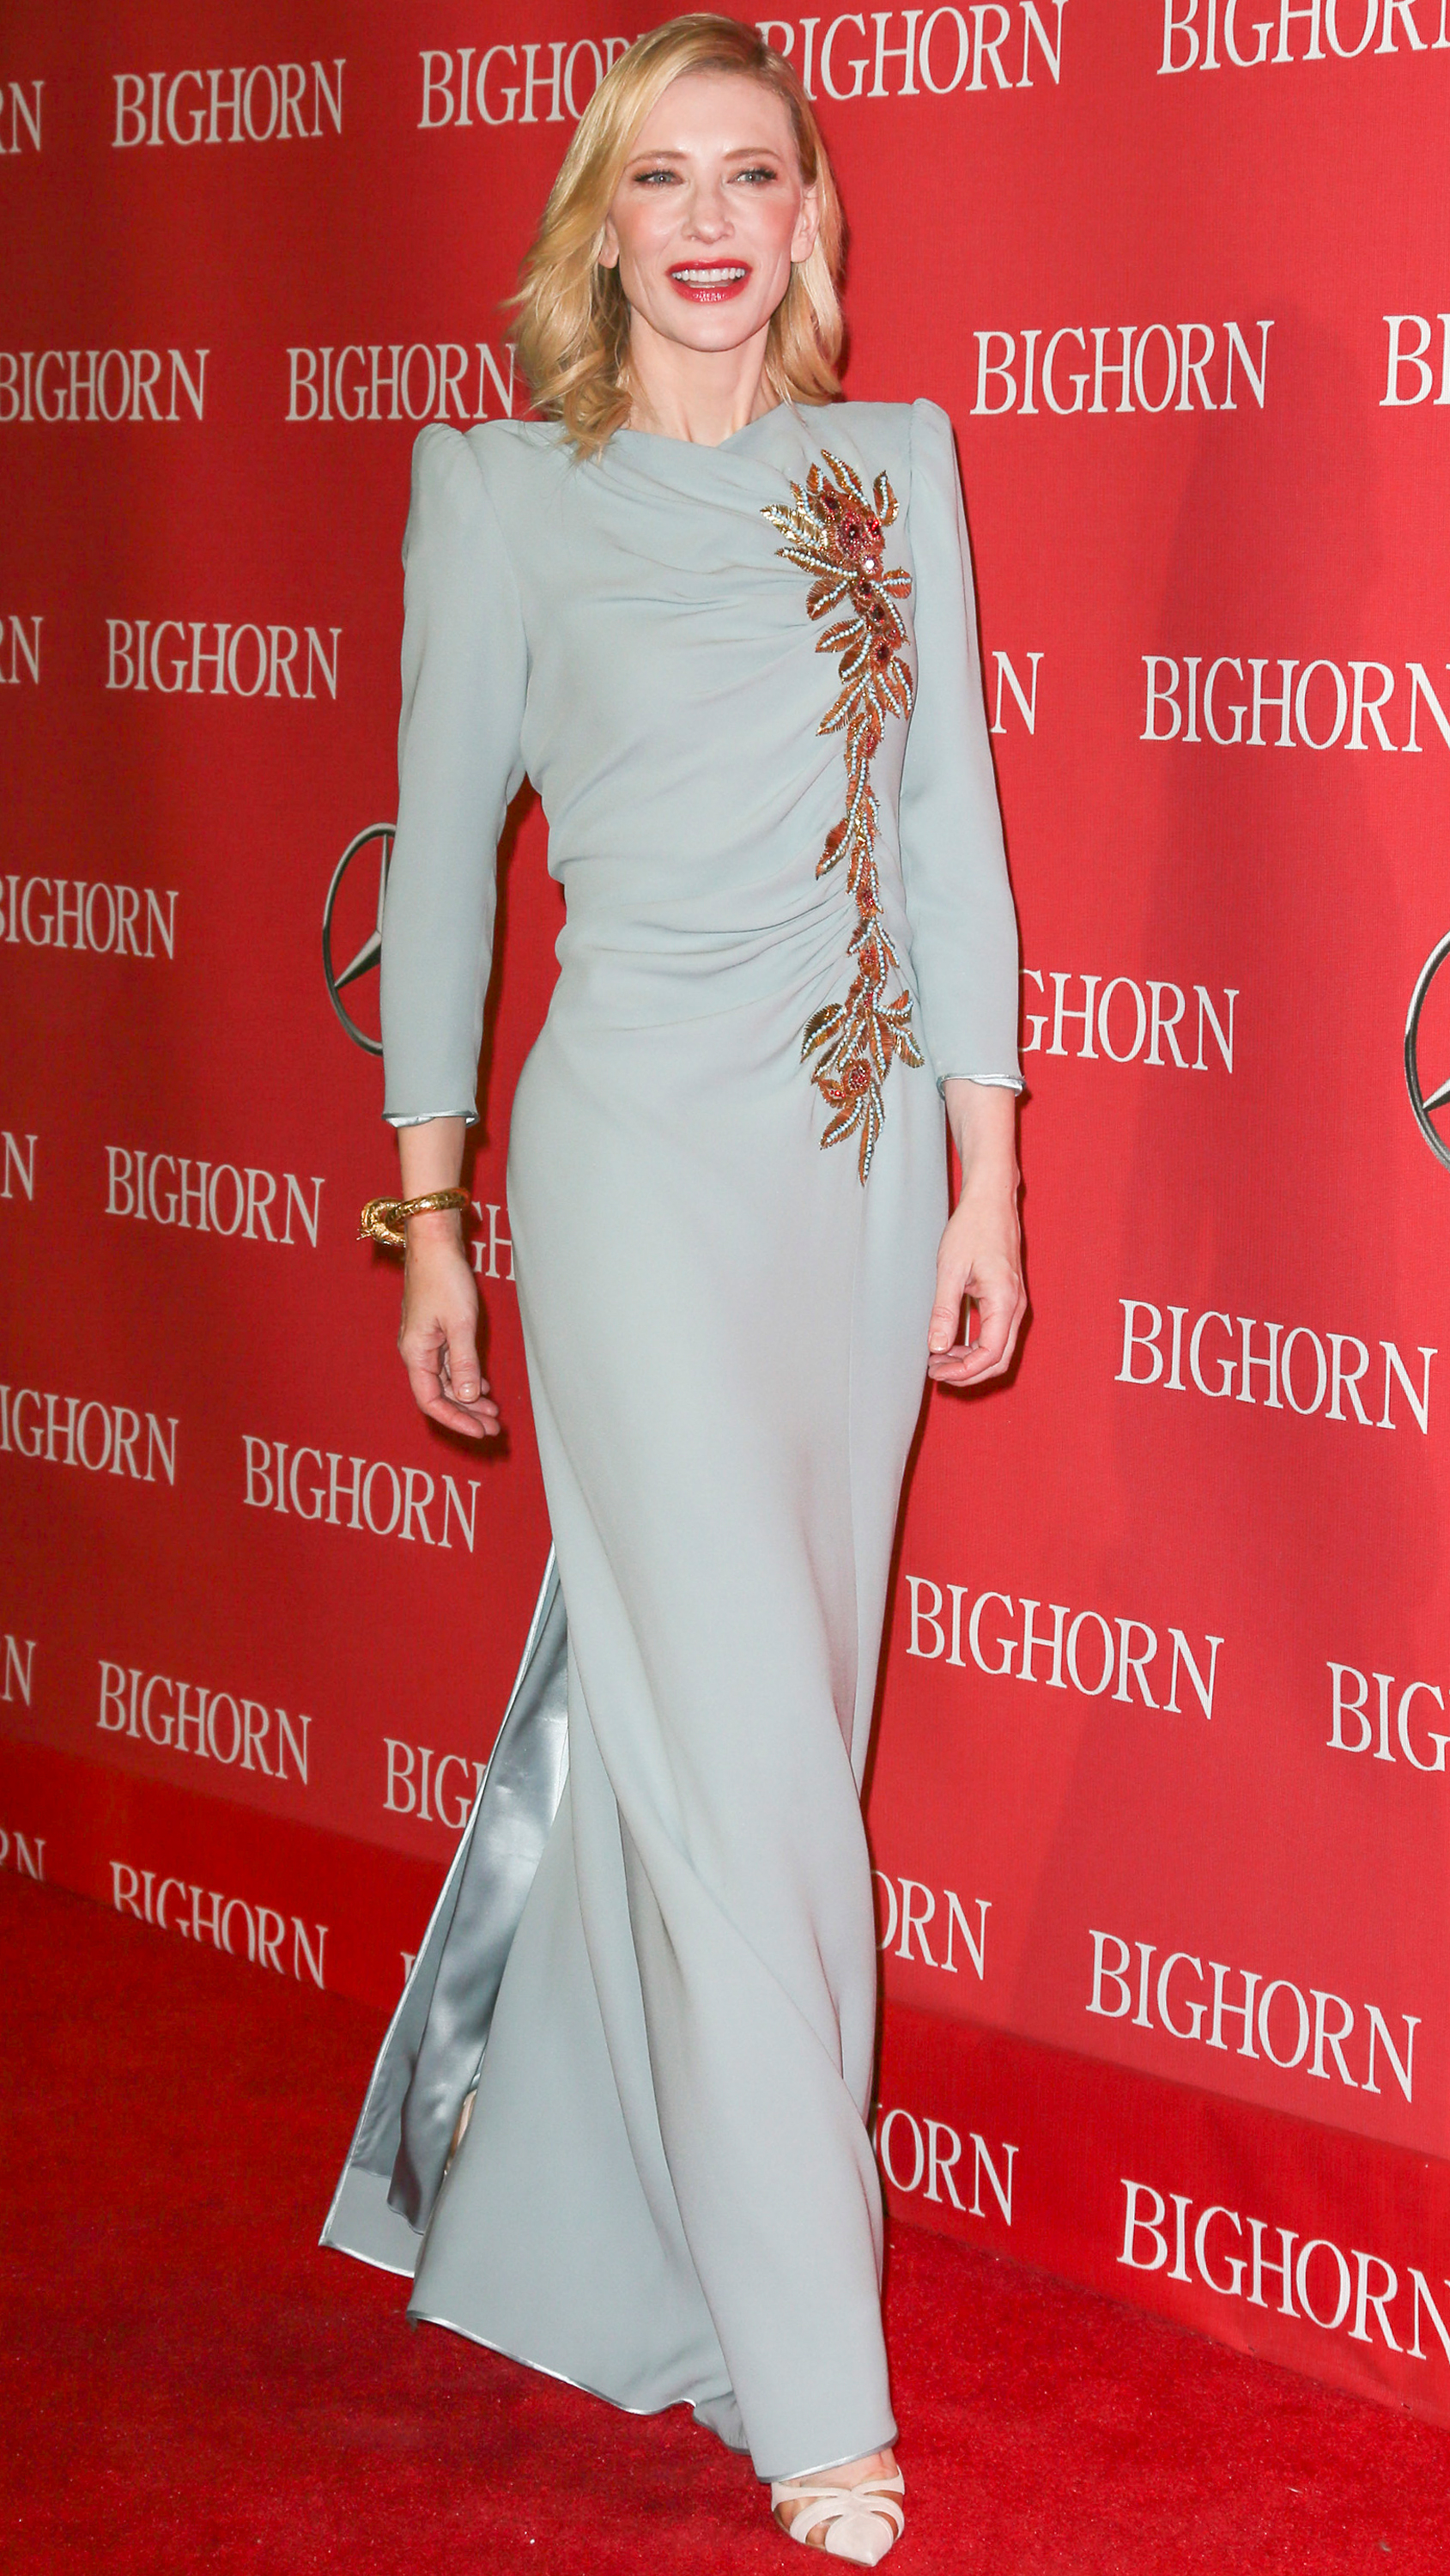 <p>The Palm Springs International Film Festival provided plenty of red carpet style this weekend when it honoured Cate Blanchett and Johnny Depp with Achievement Awards.</p><p>Blanchett took home the unofficial 'Best-Dressed' award in a pale blue, custom Marc Jacobs gown, while Depp showed he has no intention of retiring his bad boy style, accepting the honours with long, wet-looking hair and dusty trousers. Luckily, wife Amber Heard was on hand to bring the requisite polish.</p><p>Click through to see all the best looks from the night.</p>